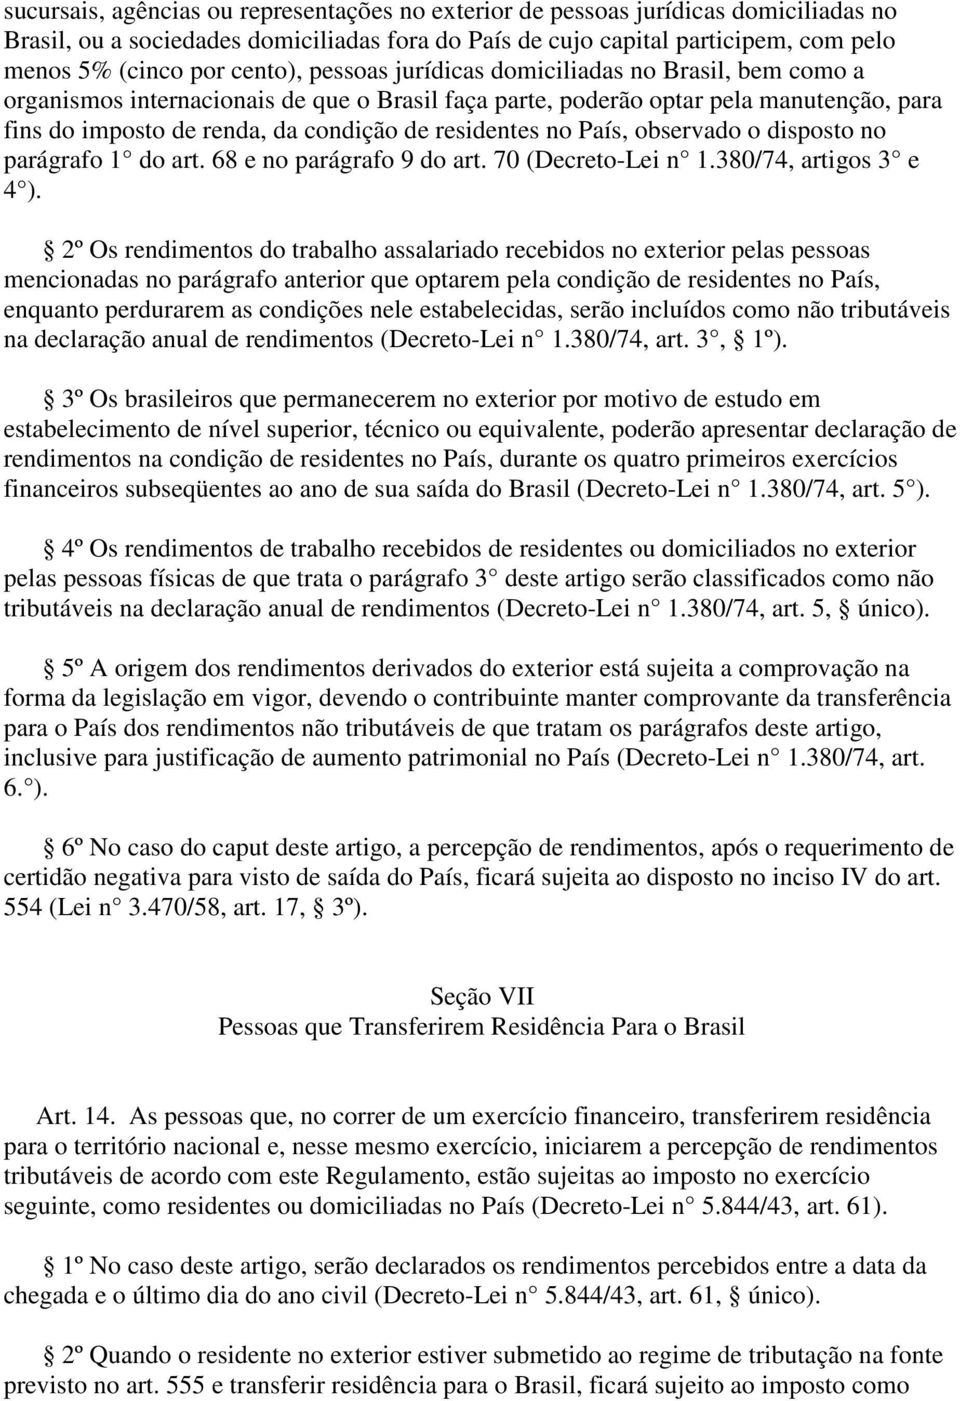 residentes no País, observado o disposto no parágrafo 1 do art. 68 e no parágrafo 9 do art. 70 (Decreto-Lei n 1.380/74, artigos 3 e 4 ).